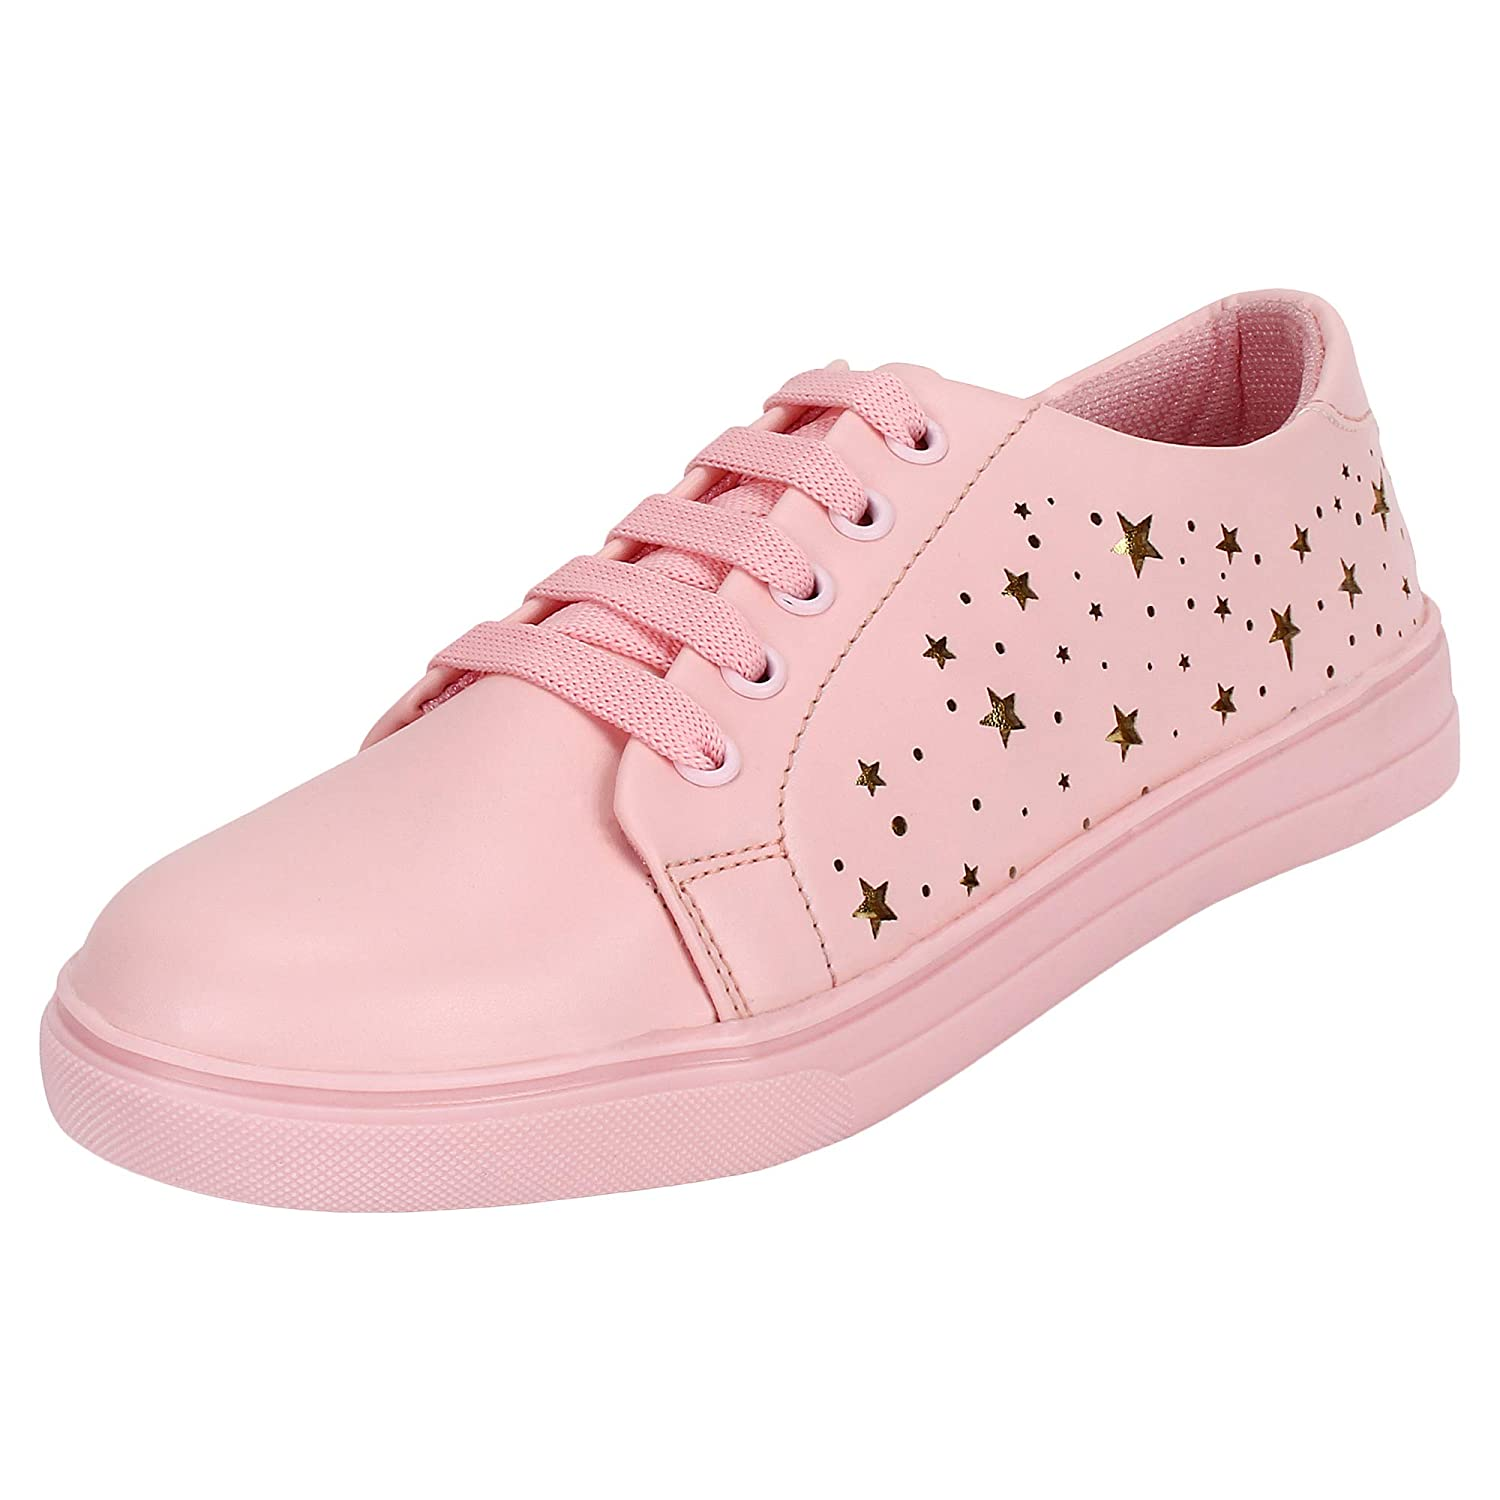 Pink Laces- Spanish Pink